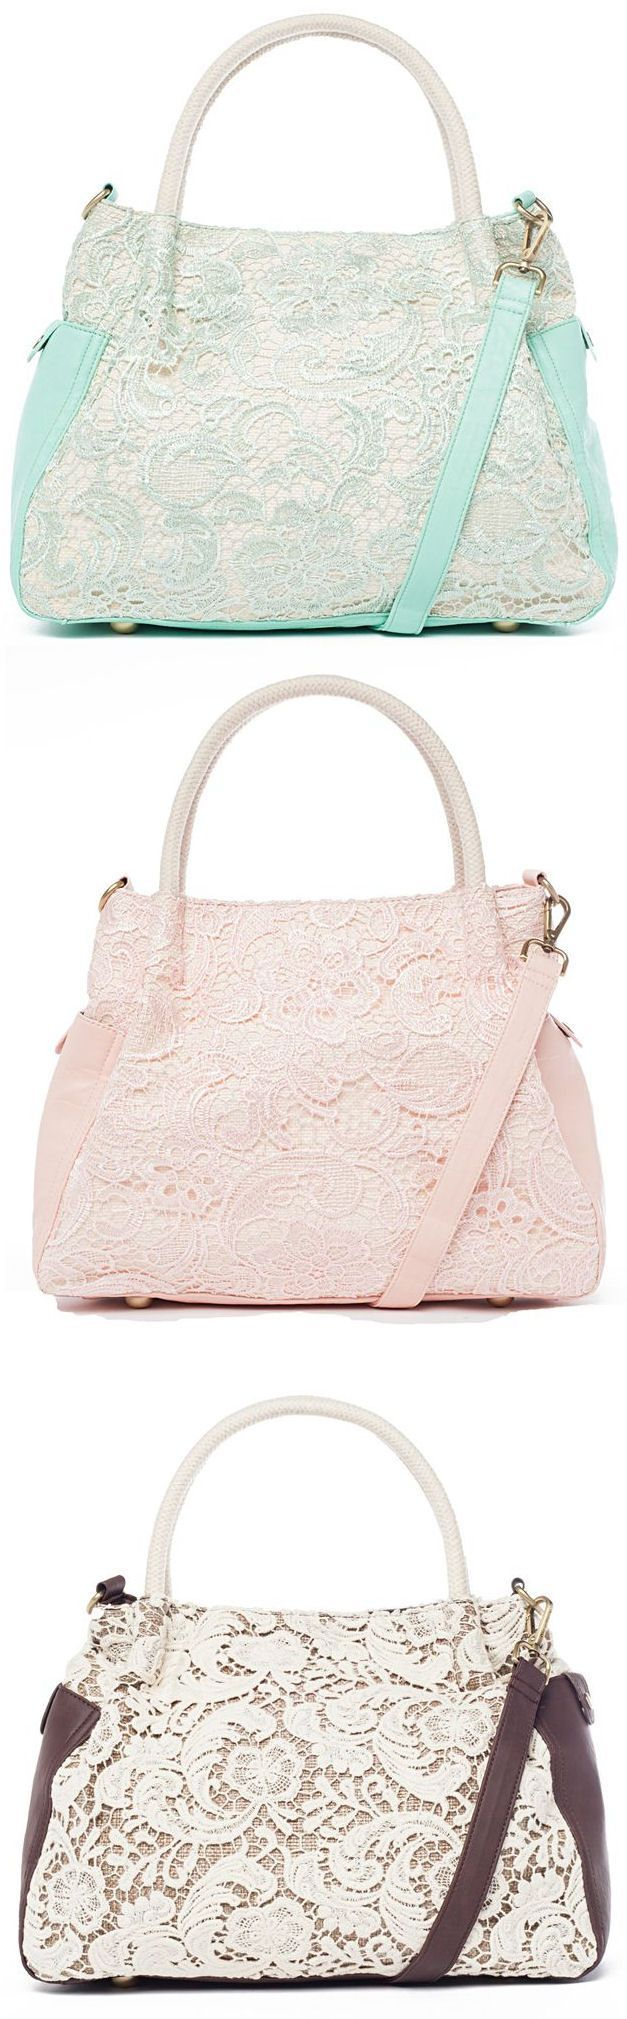 designer handbags suppliers china,designer wholesale handbags for cheap